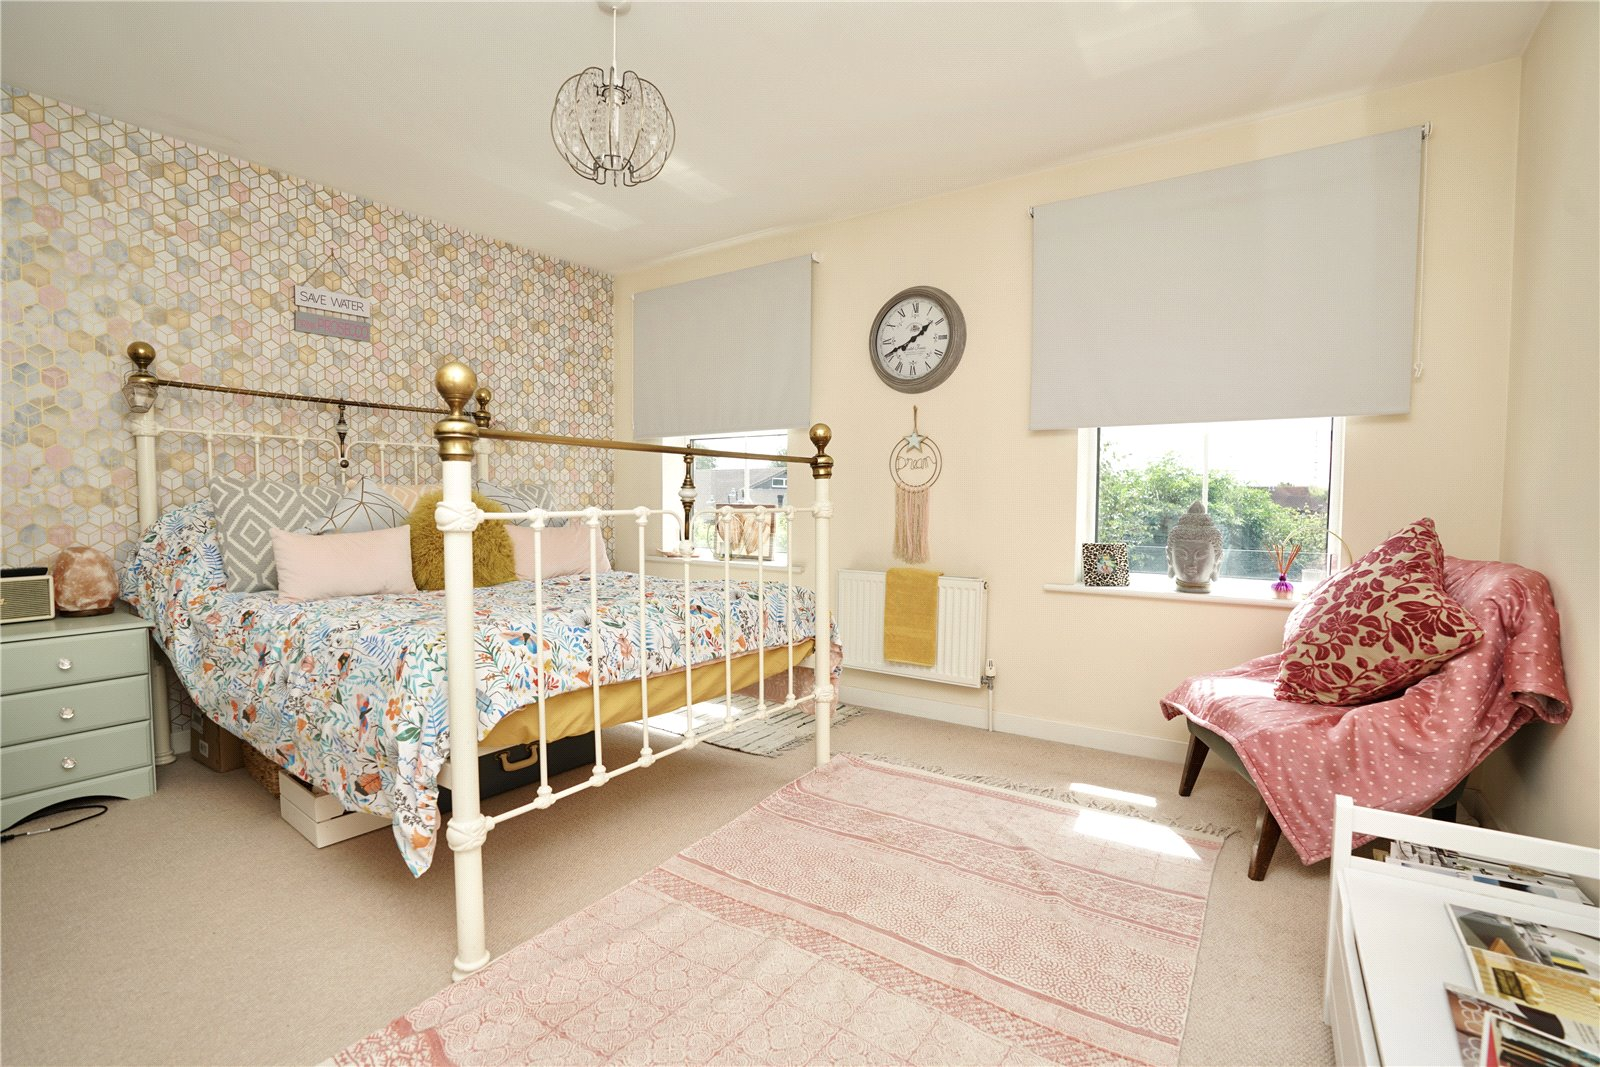 4 bed house for sale in Linton Close, Eaton Socon  - Property Image 5